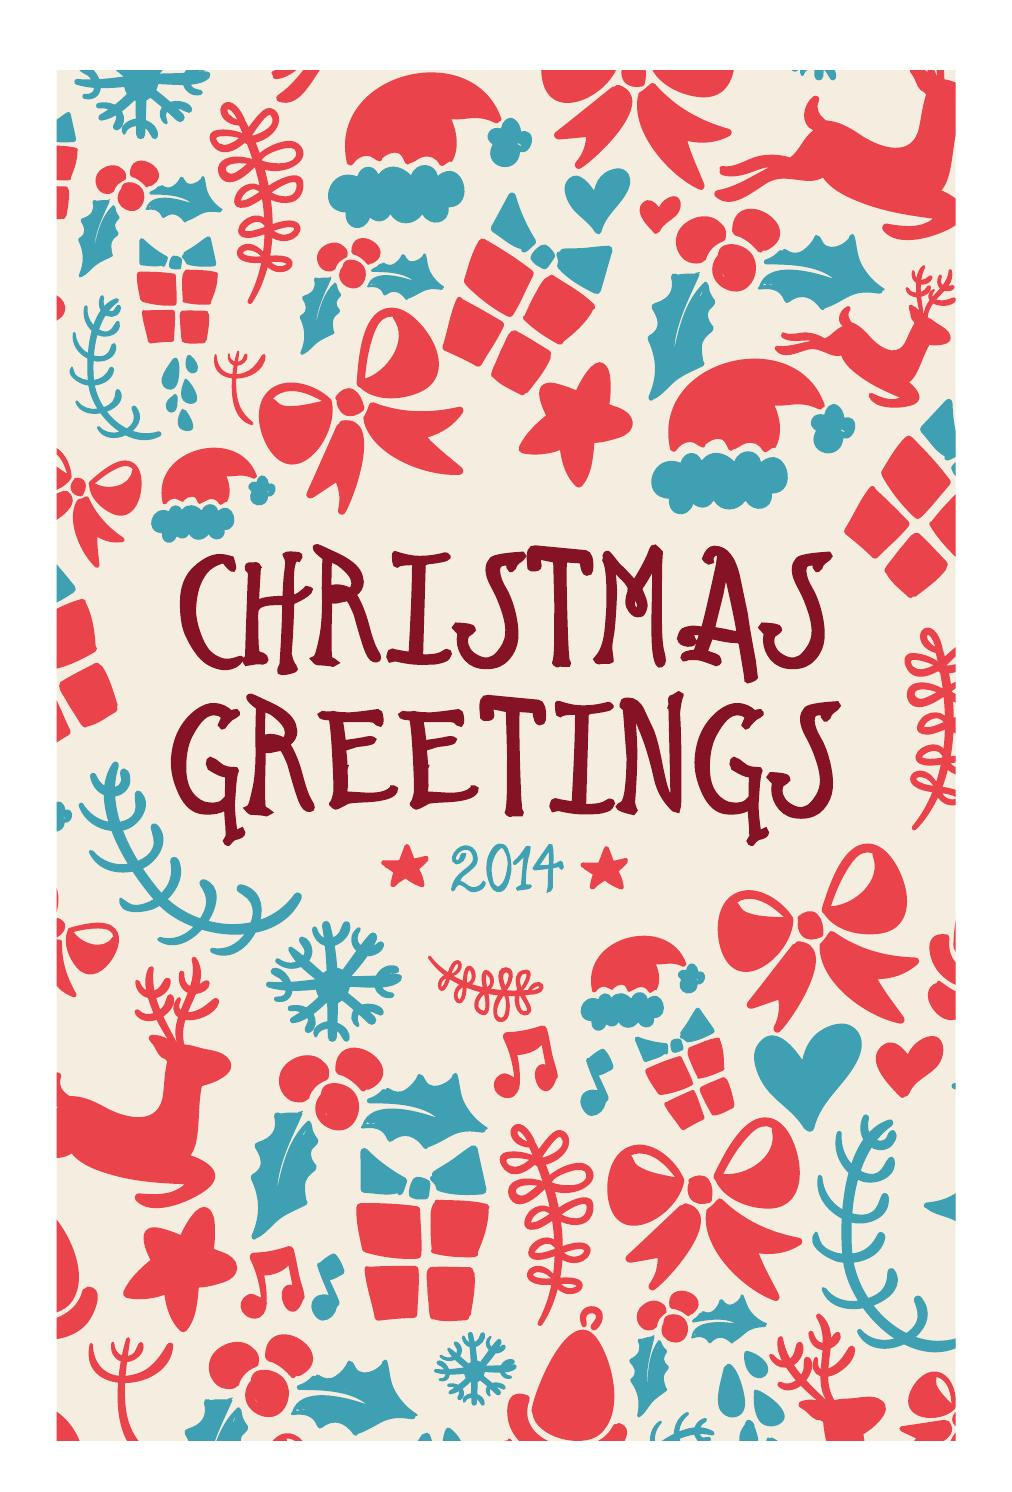 The Leader' Barossa Valley Christmas Greetings 2014 by The Leader